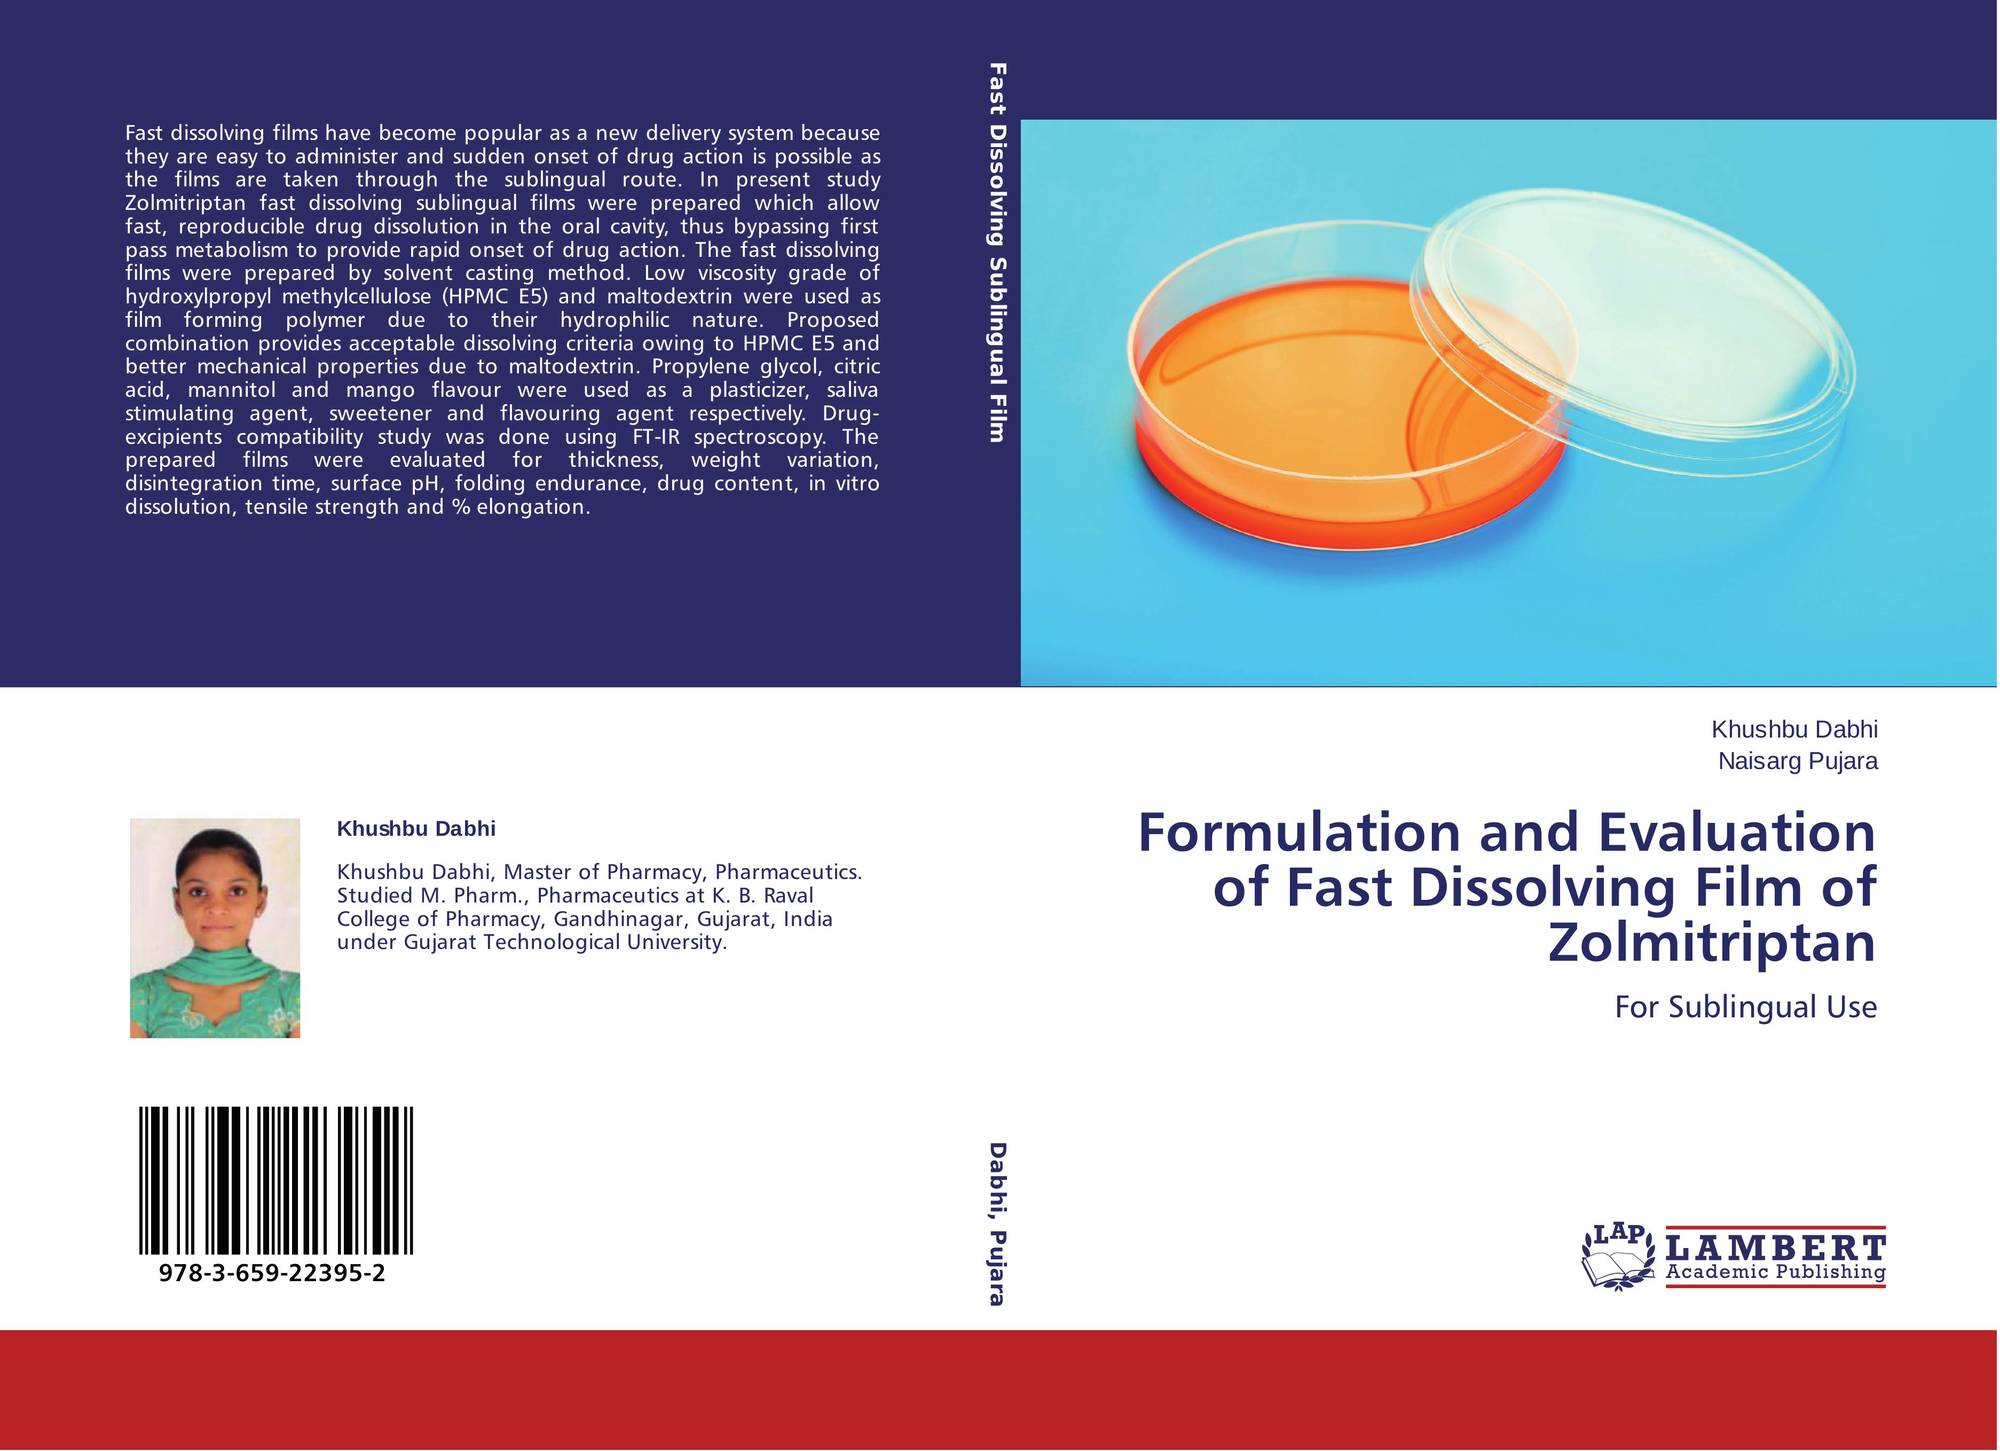 thesis on fast dissolving films